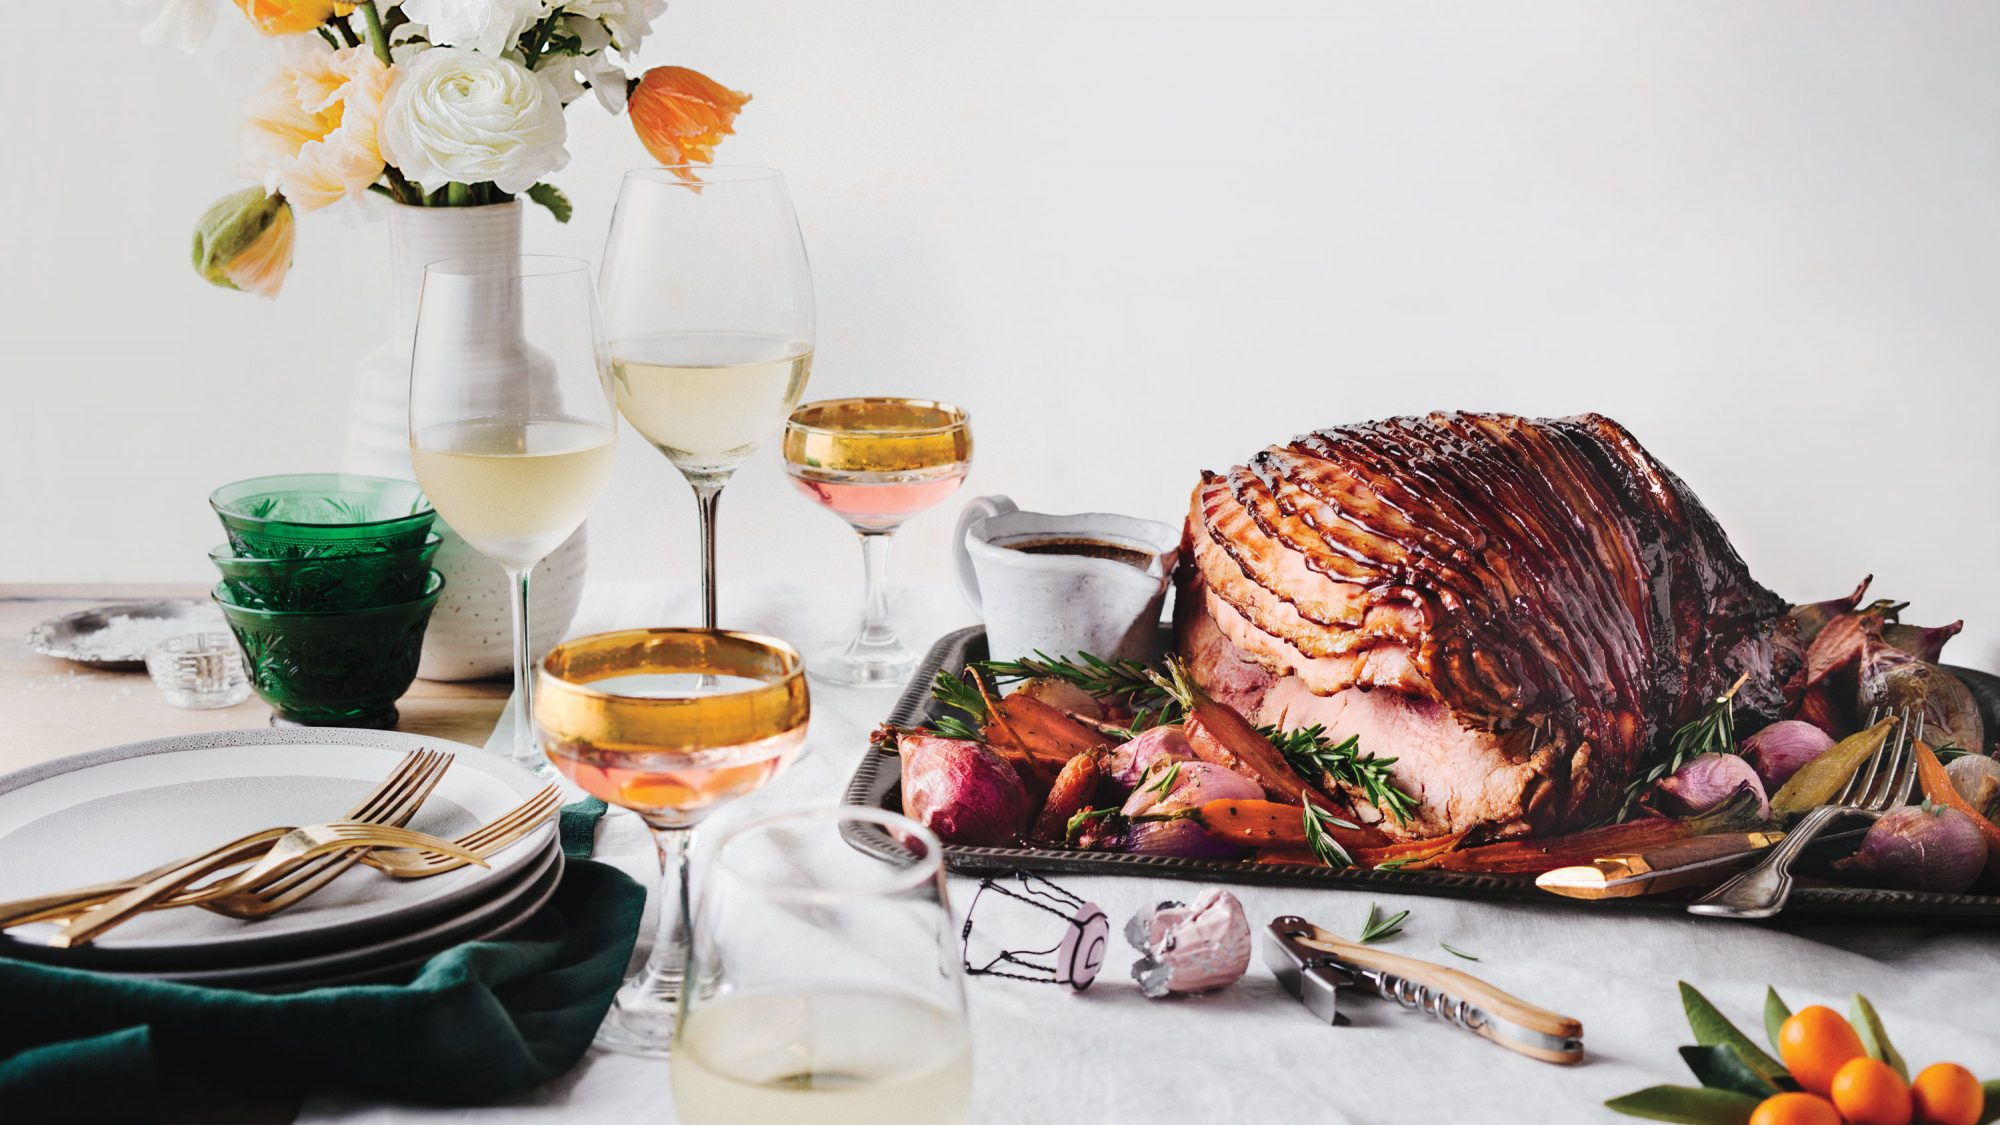 Saba-and-Dijon-Glazed Easter Ham